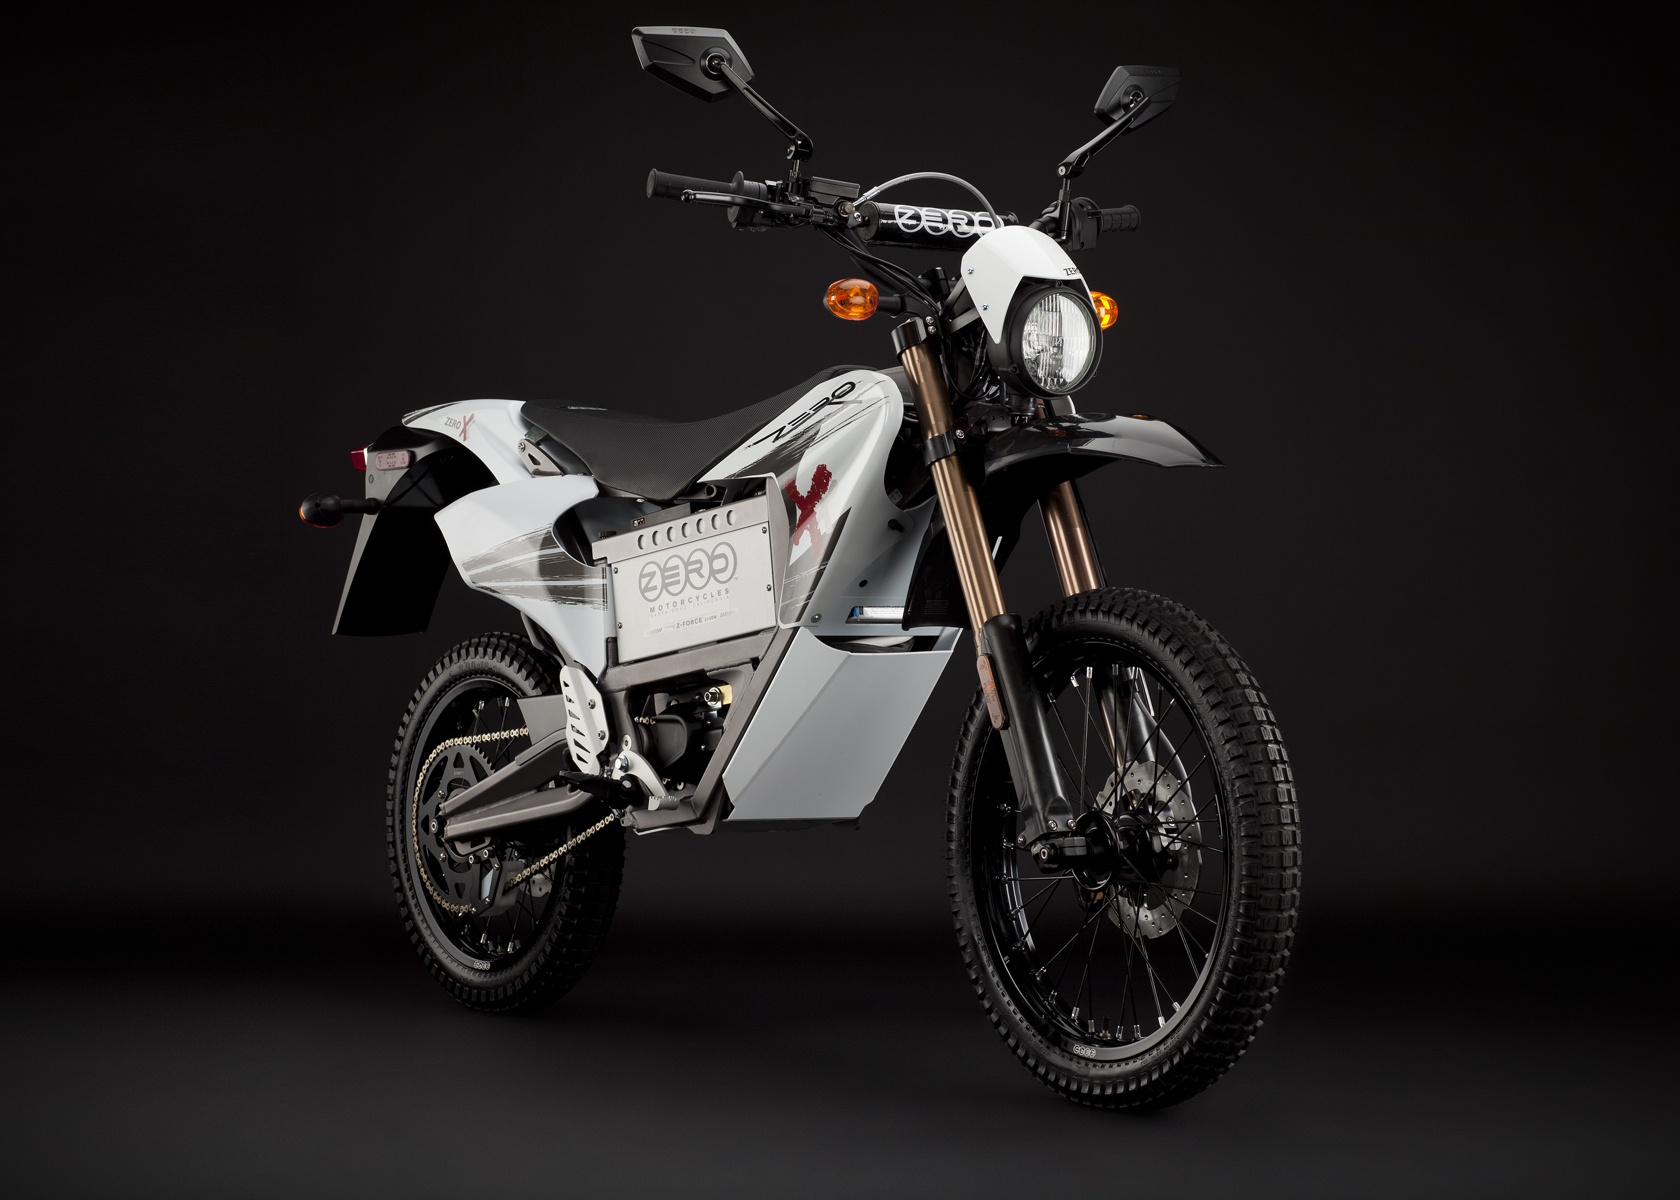 2011 Zero X Electric Motorcycle: Angle Right, Street Legal Model